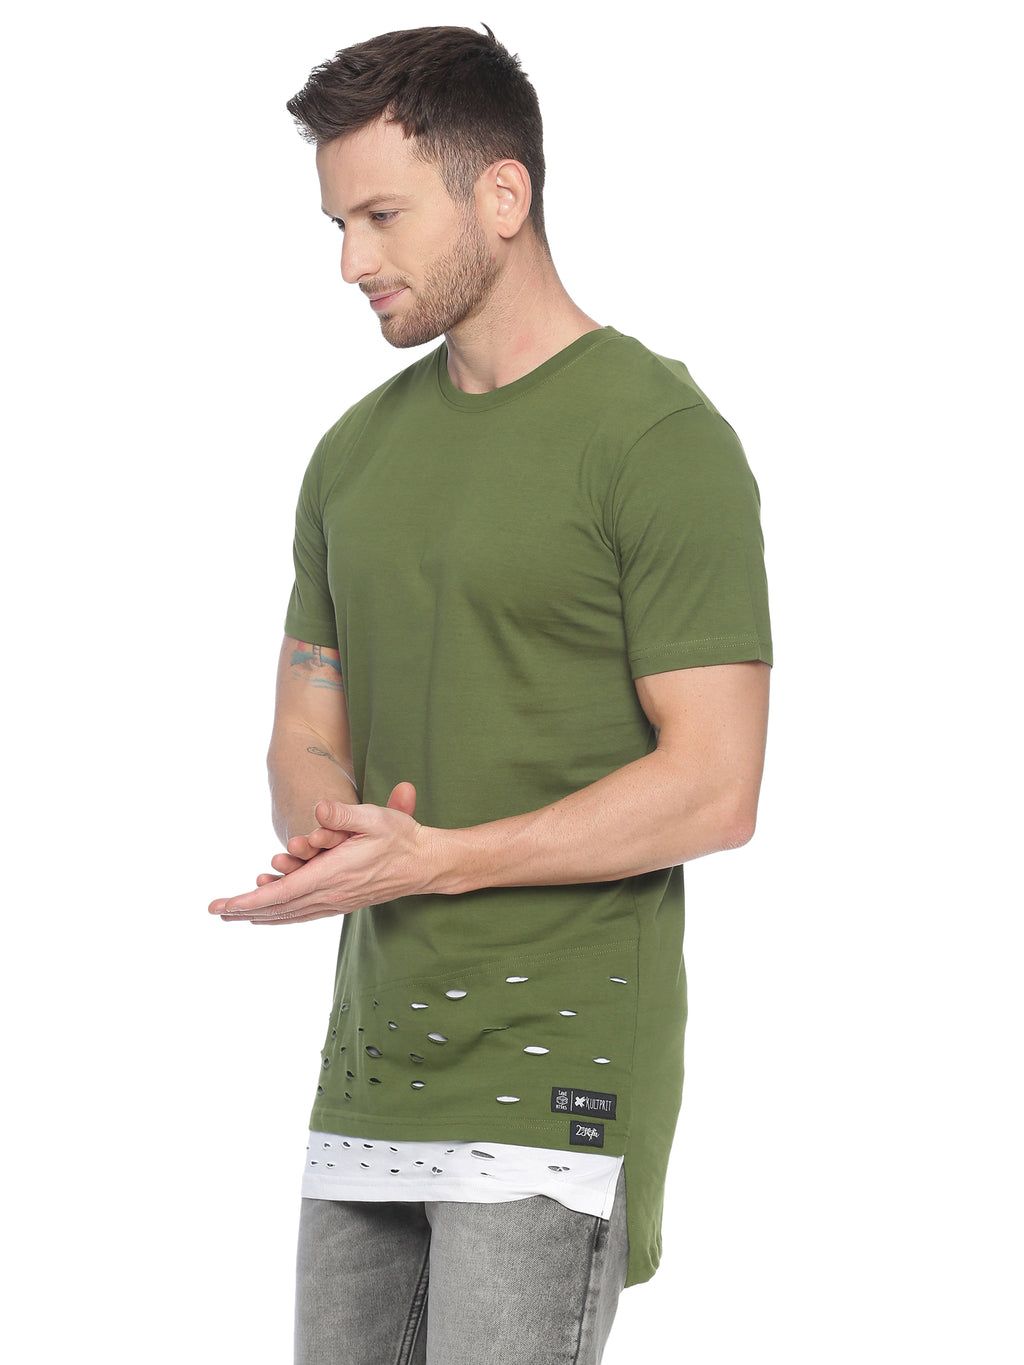 fashionable style T-Shirt ideal for men with long line